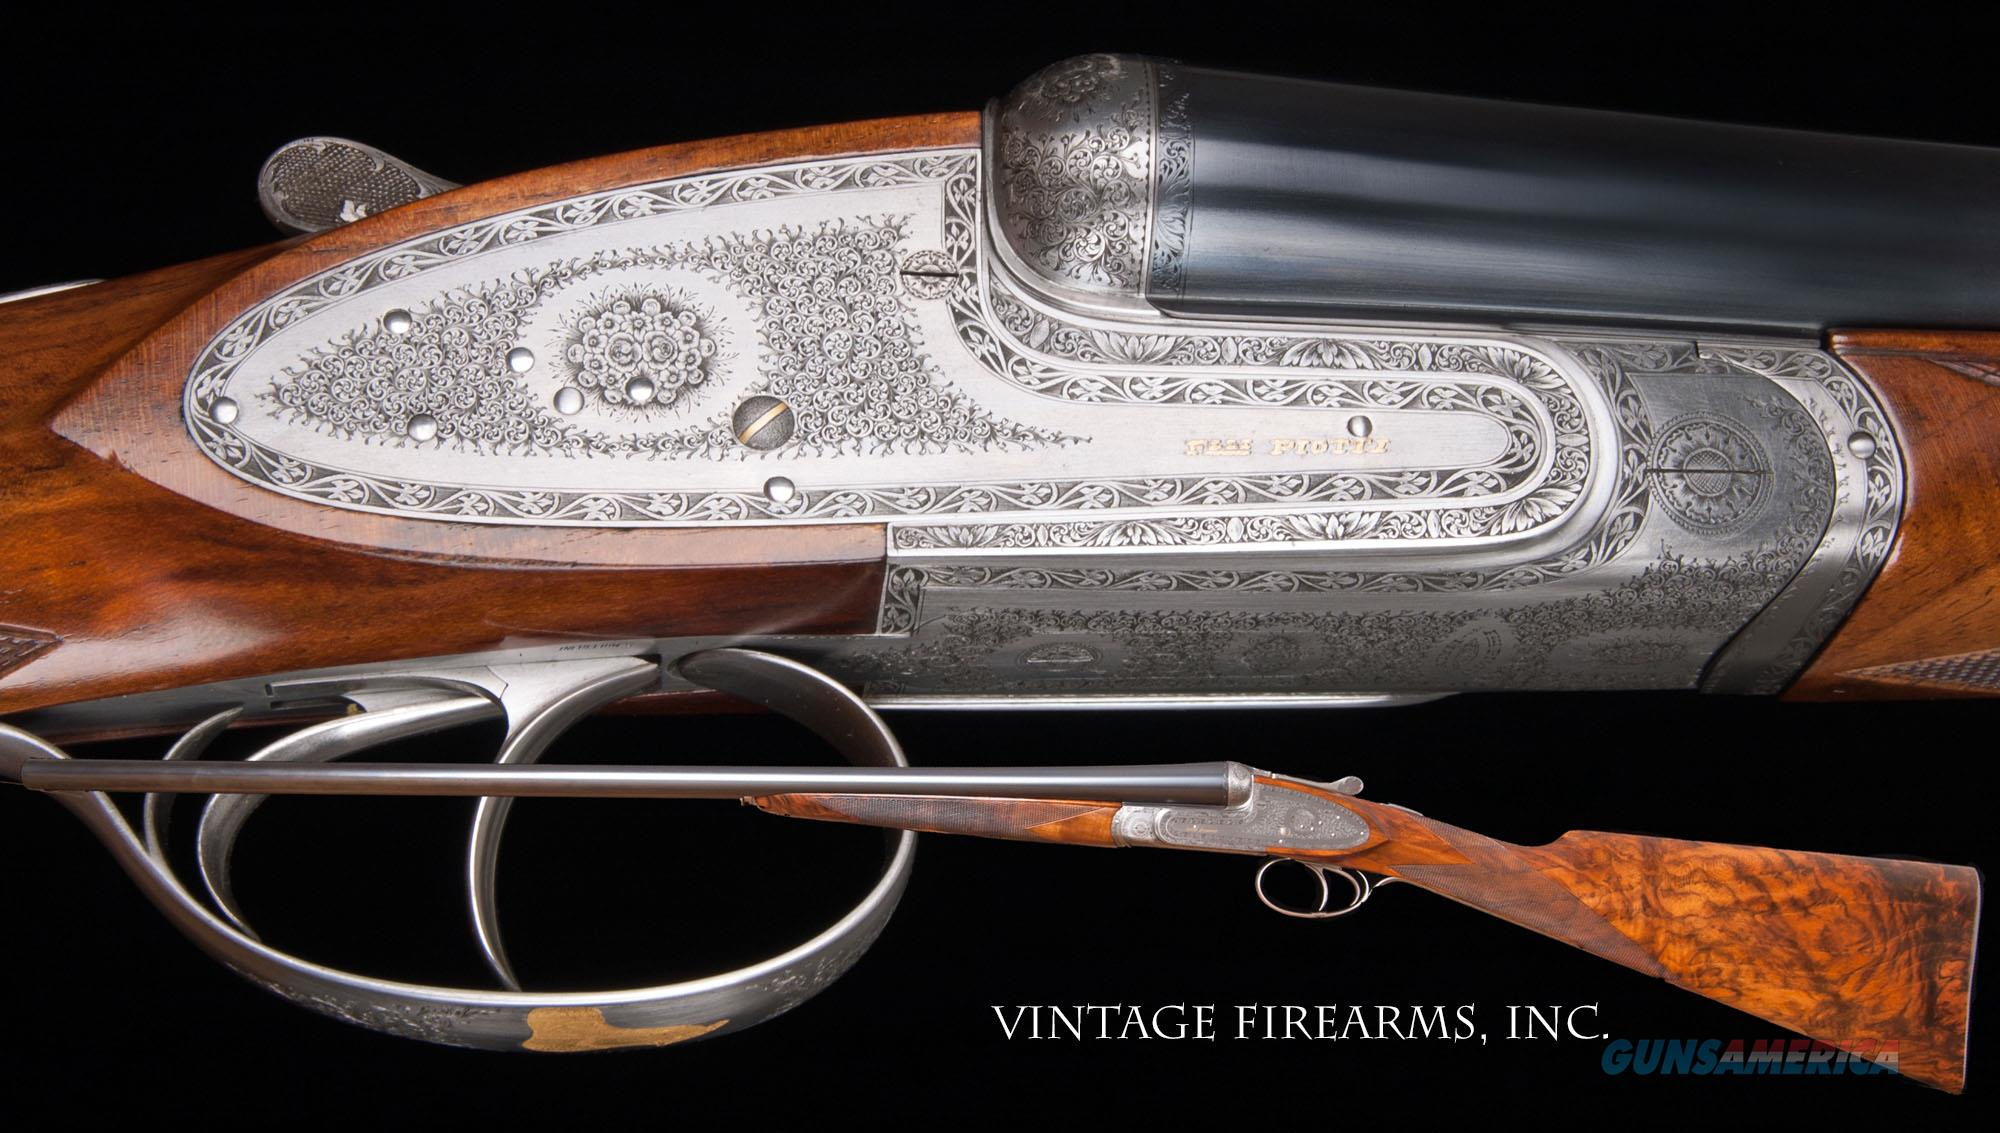 Piotti Monaco 20 Gauge SxS - NO. 2 ENGRAVED UPGRADED WOOD, AS NEW!   Guns > Shotguns > Piotti Shotguns